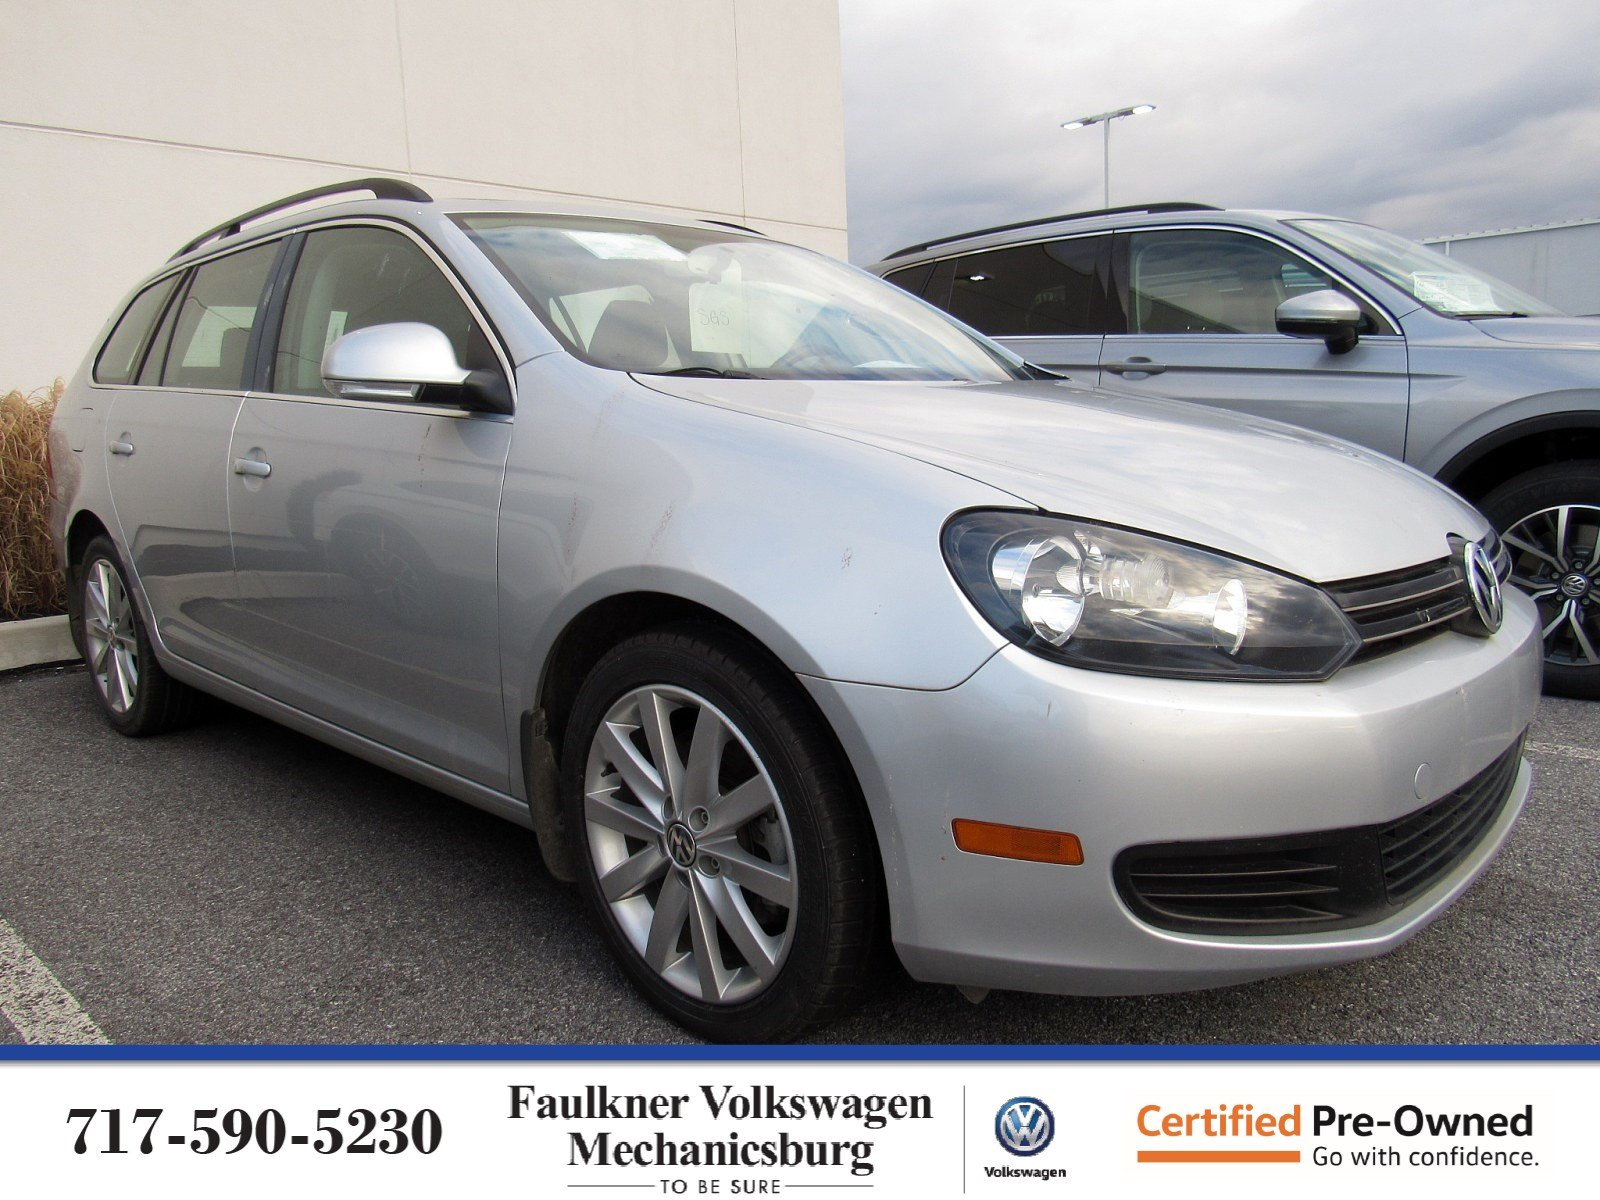 Certified Pre-Owned 2014 Volkswagen Jetta SportWagen TDI with Sunroof